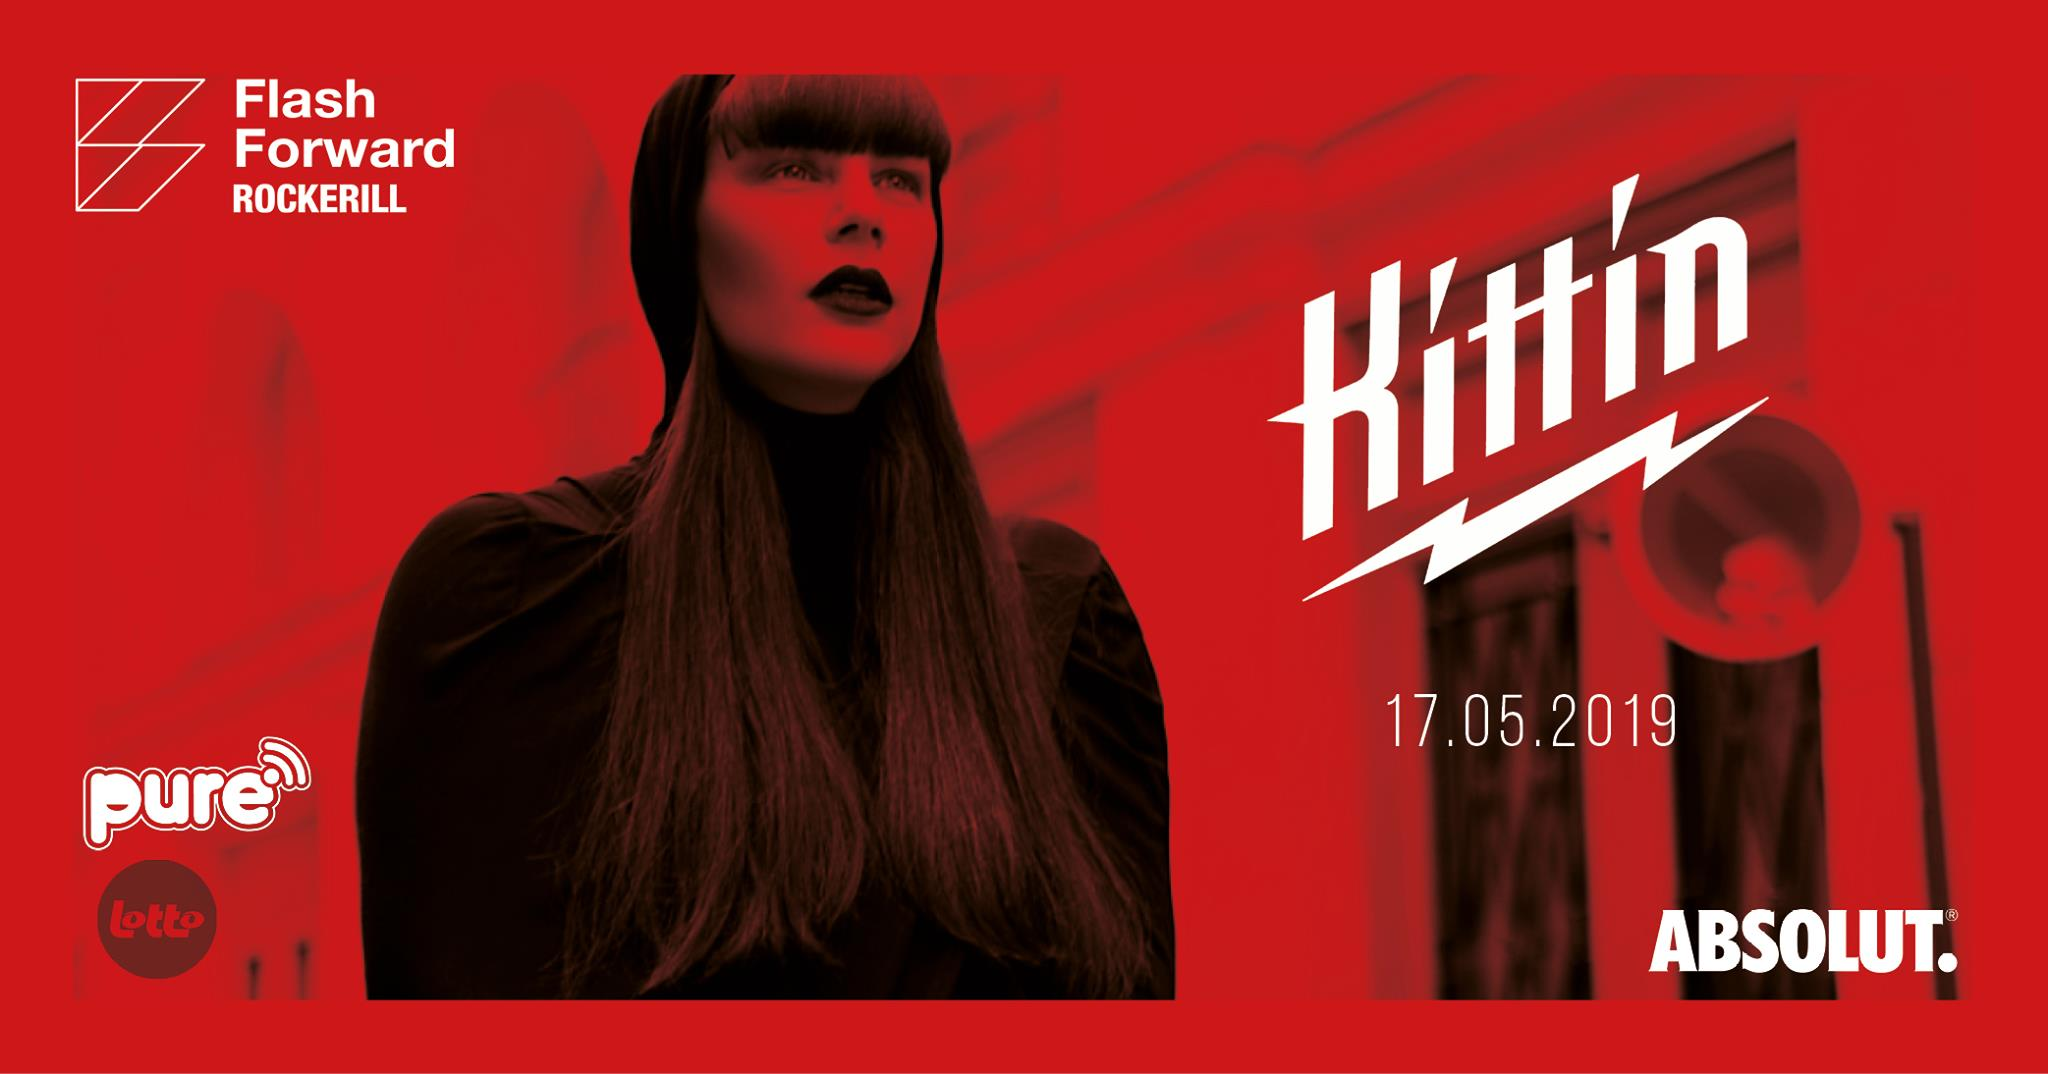 Flashforward: Kittin - Le 17 Mai 2019 - Rockerill